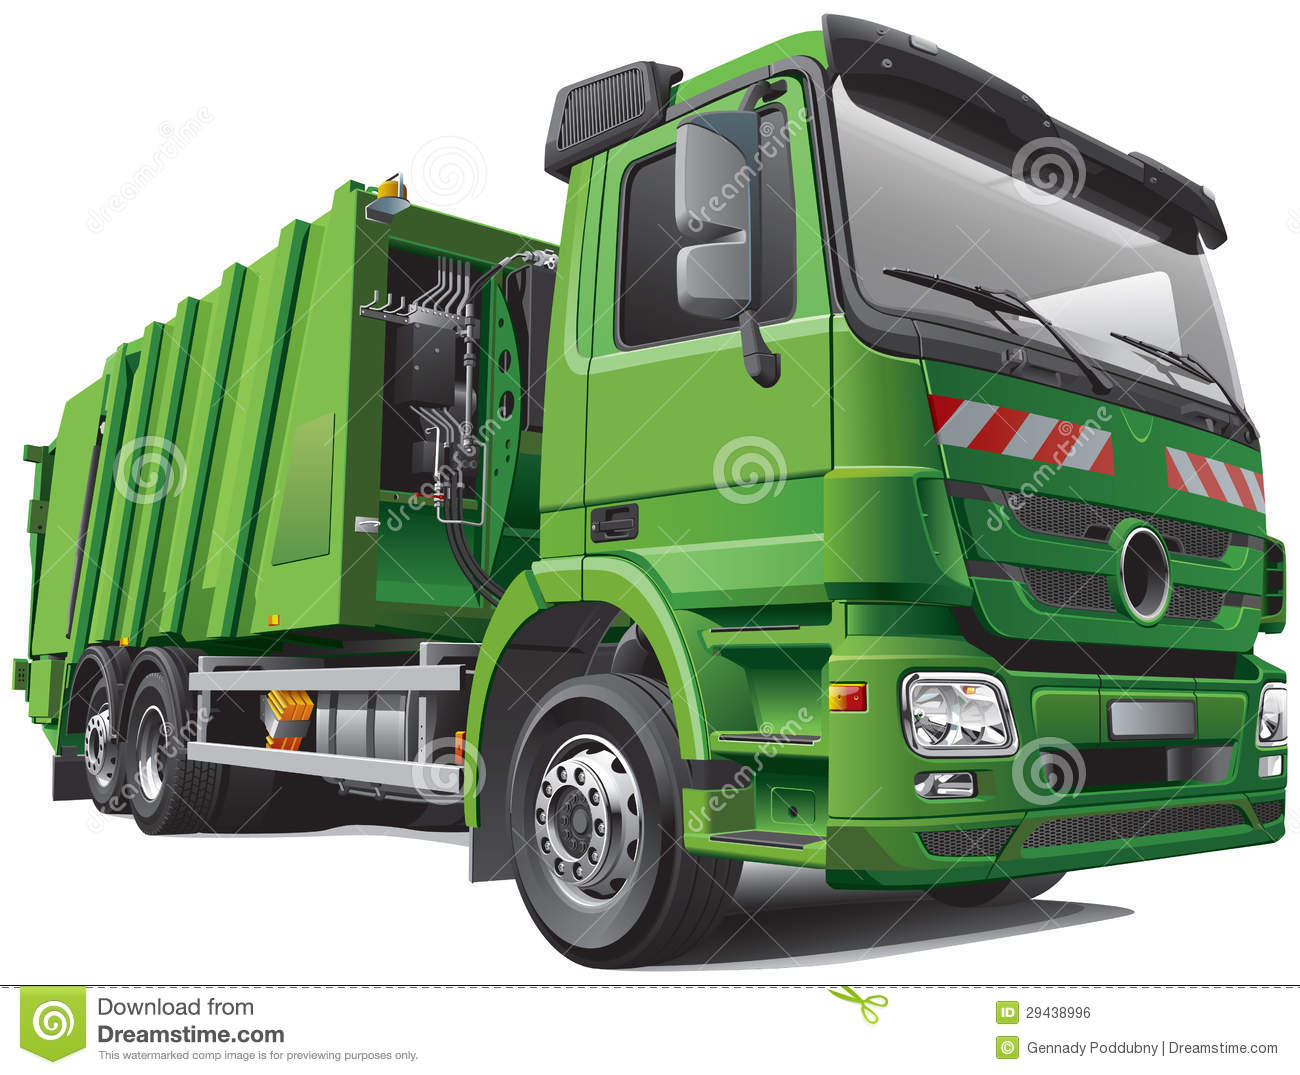 Free coloring pages garbage truck - Coloring Pages Garbage Truck Green Truck Clipart Free Modern Garbage Truck